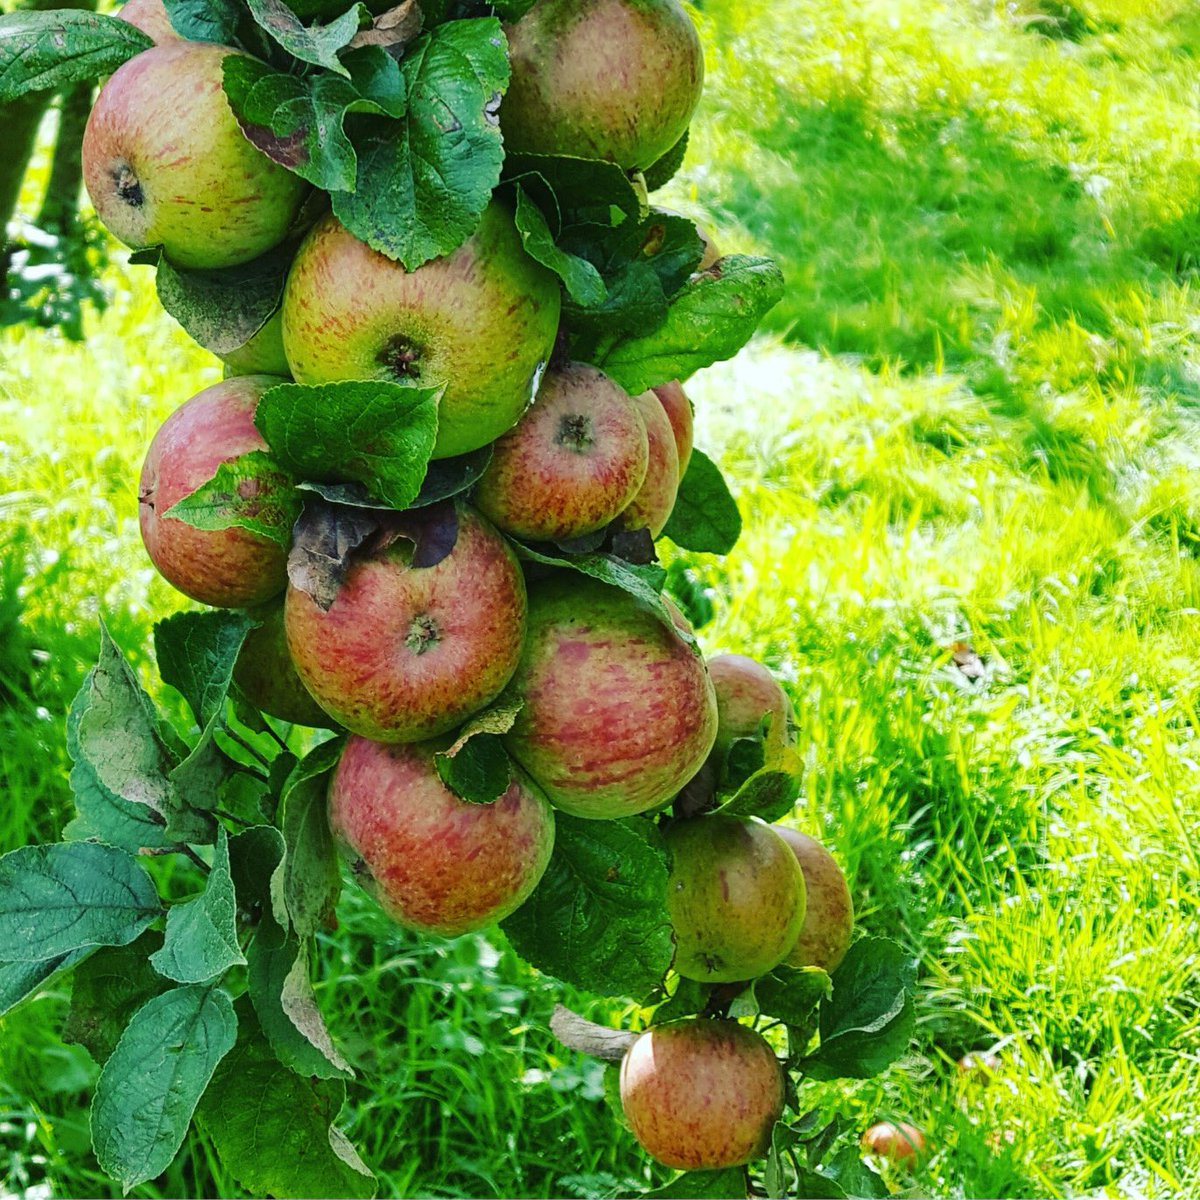 Crawley Beauty apples in abundance! #autumn<br>http://pic.twitter.com/DgnGn7MNUp